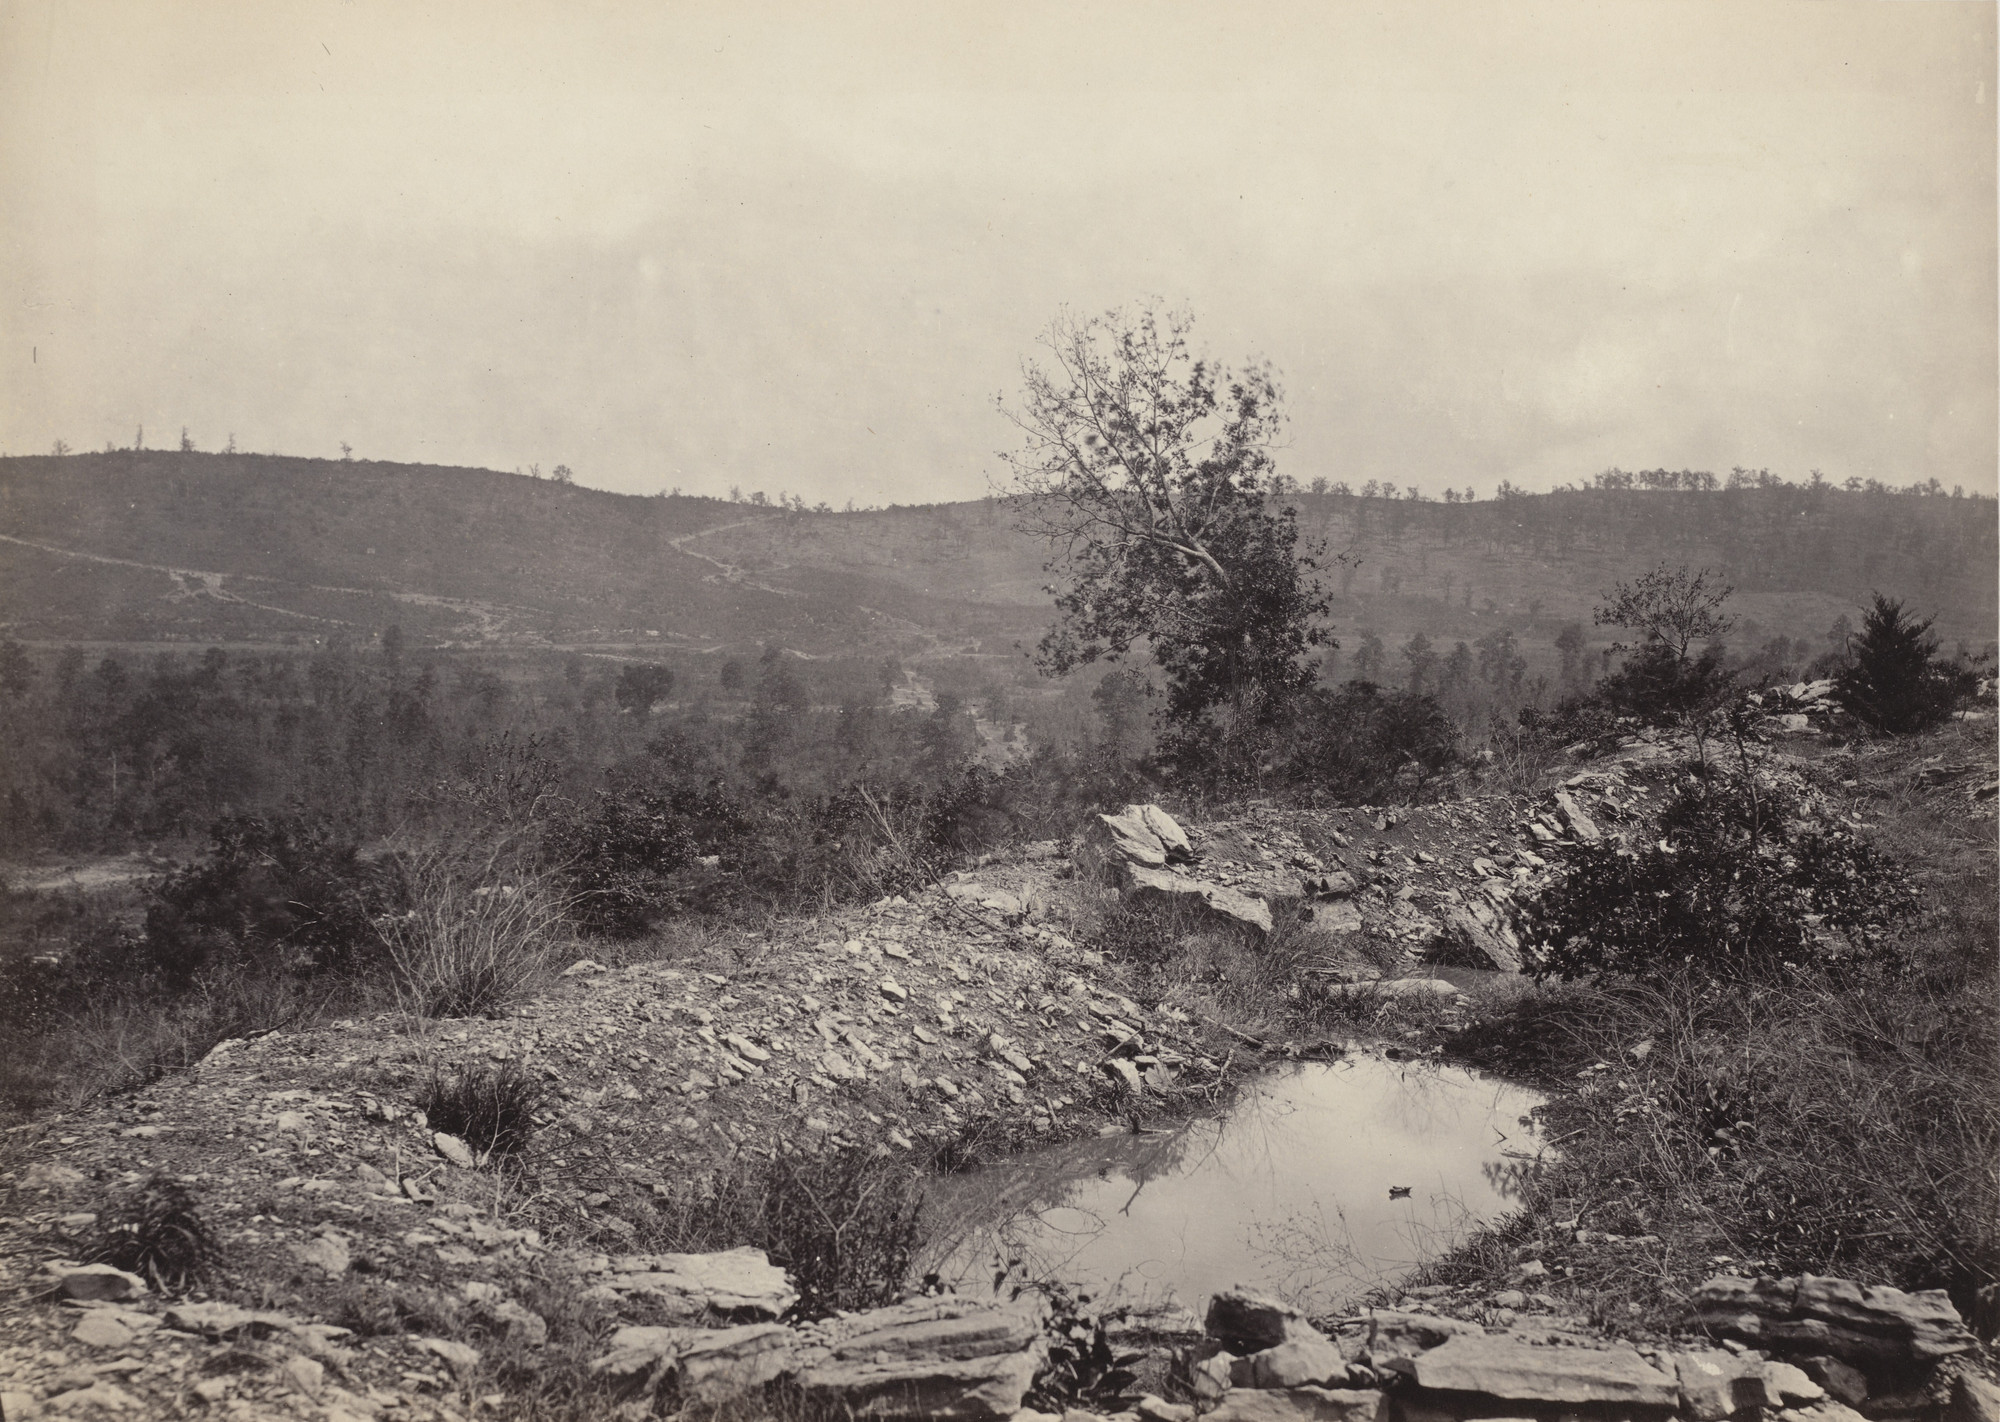 George Barnard. Mission Ridge, from Orchard Knob from the album Photographic Views of Sherman's Campaign. 1864-65